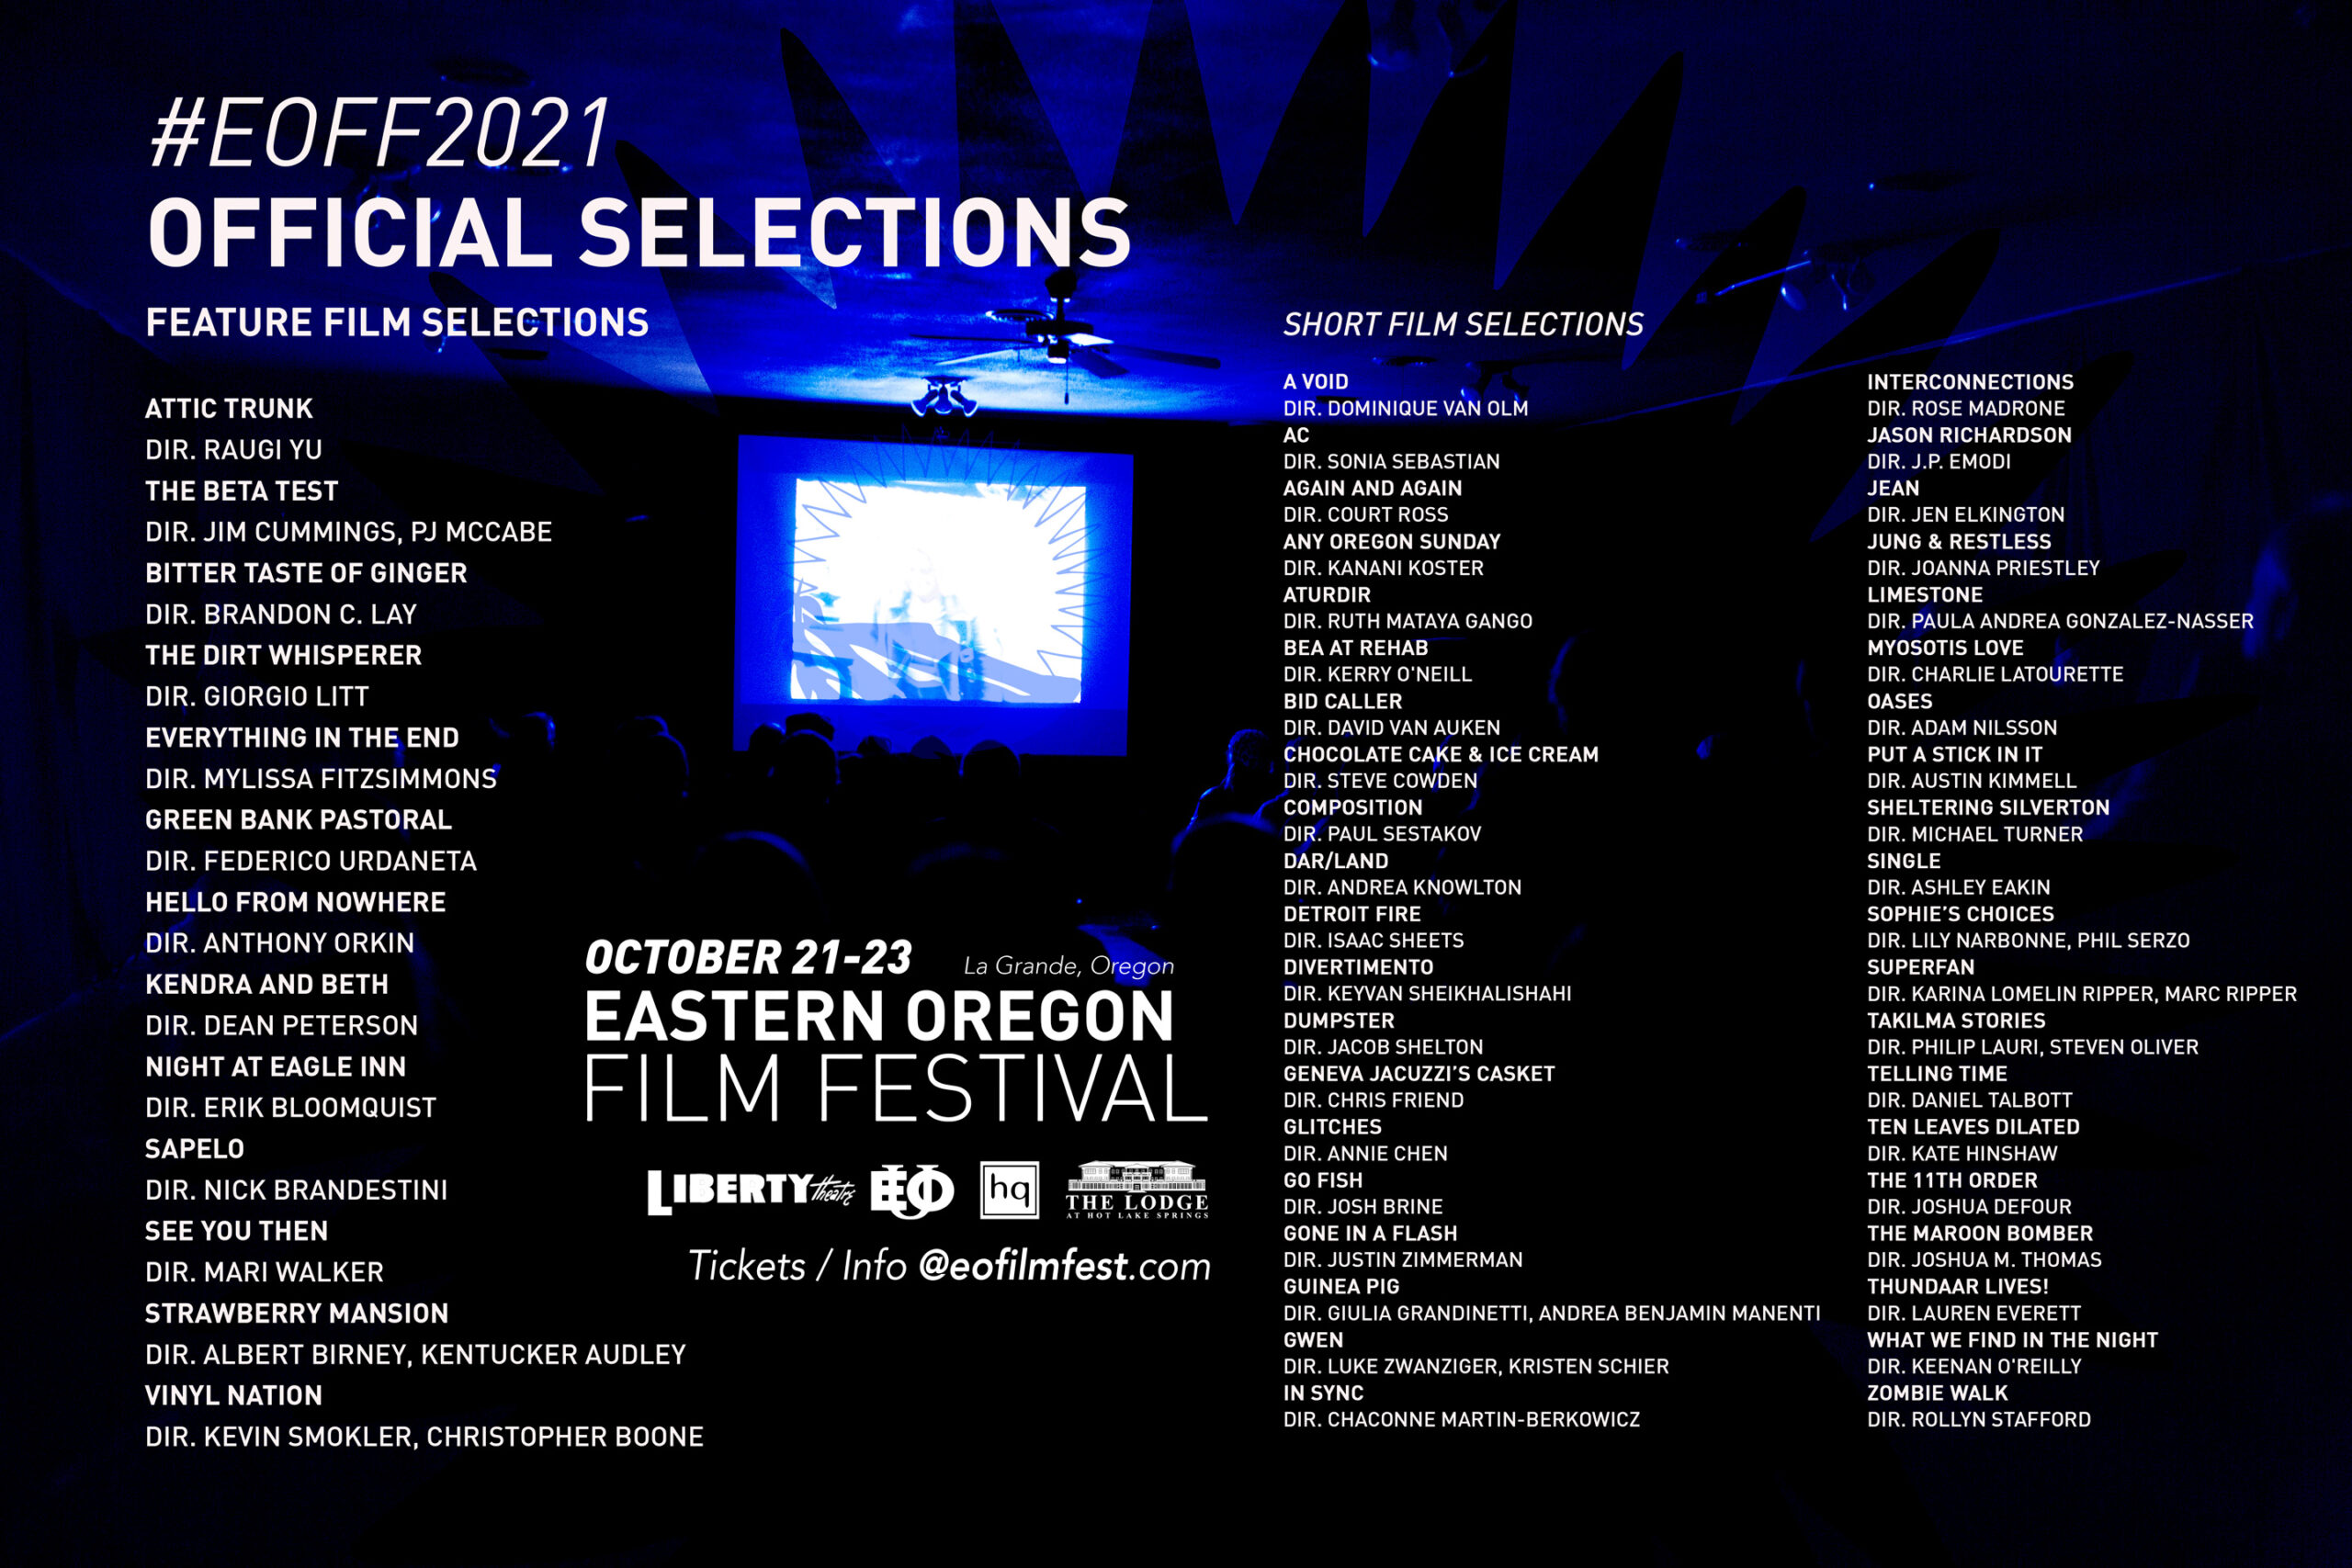 #EOFF2021 Official Selections List